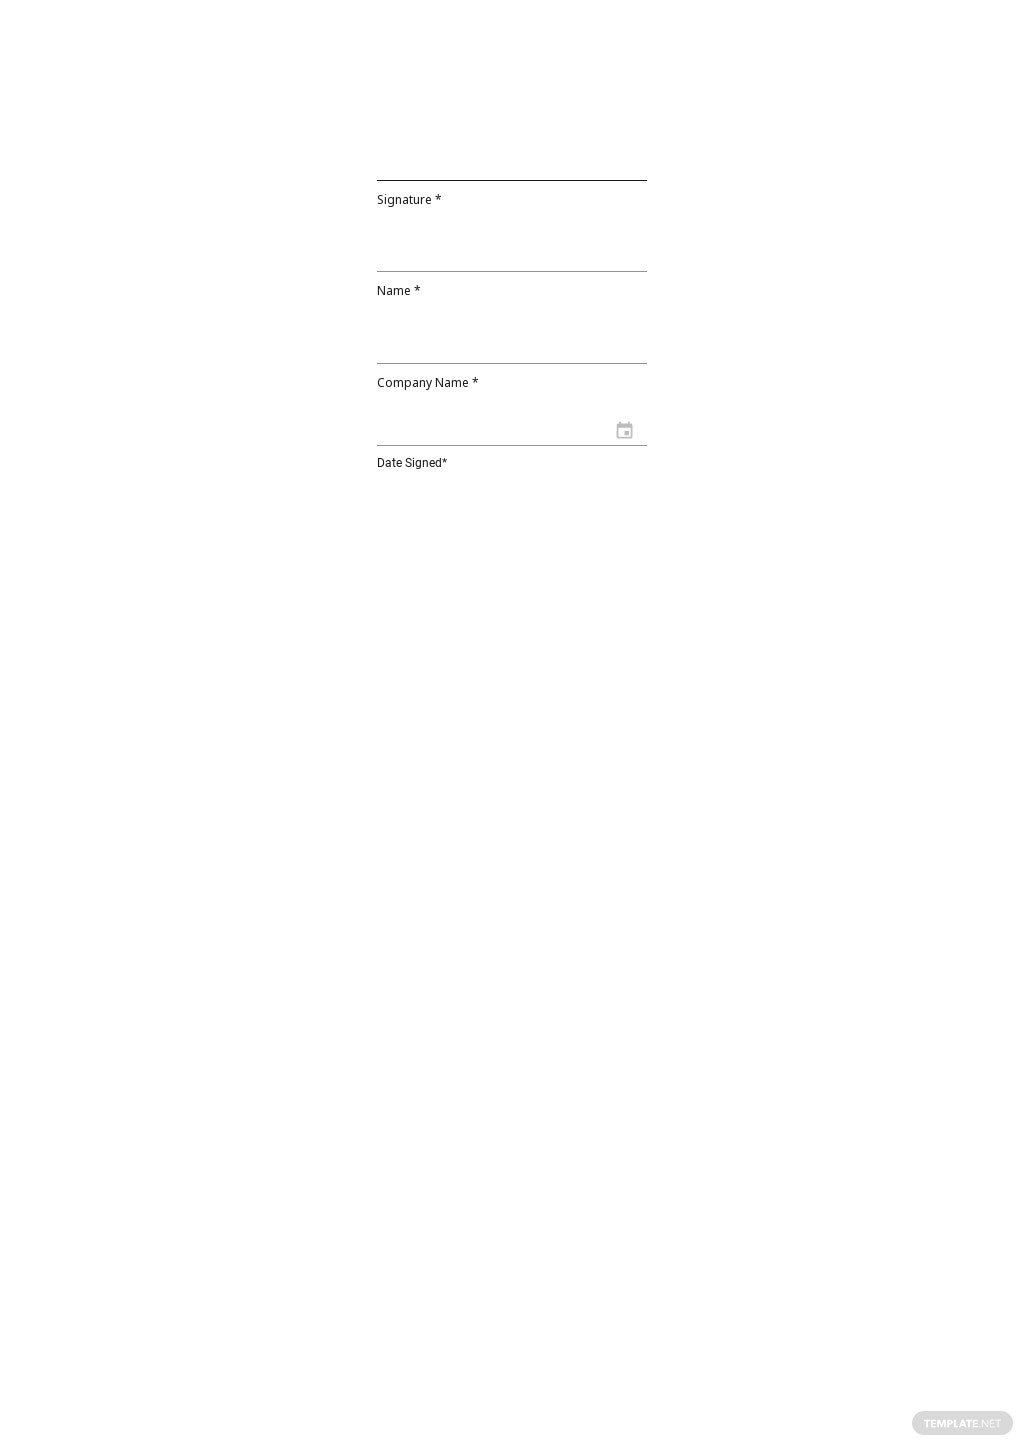 Advertising and Marketing Agreement Template 3.jpe